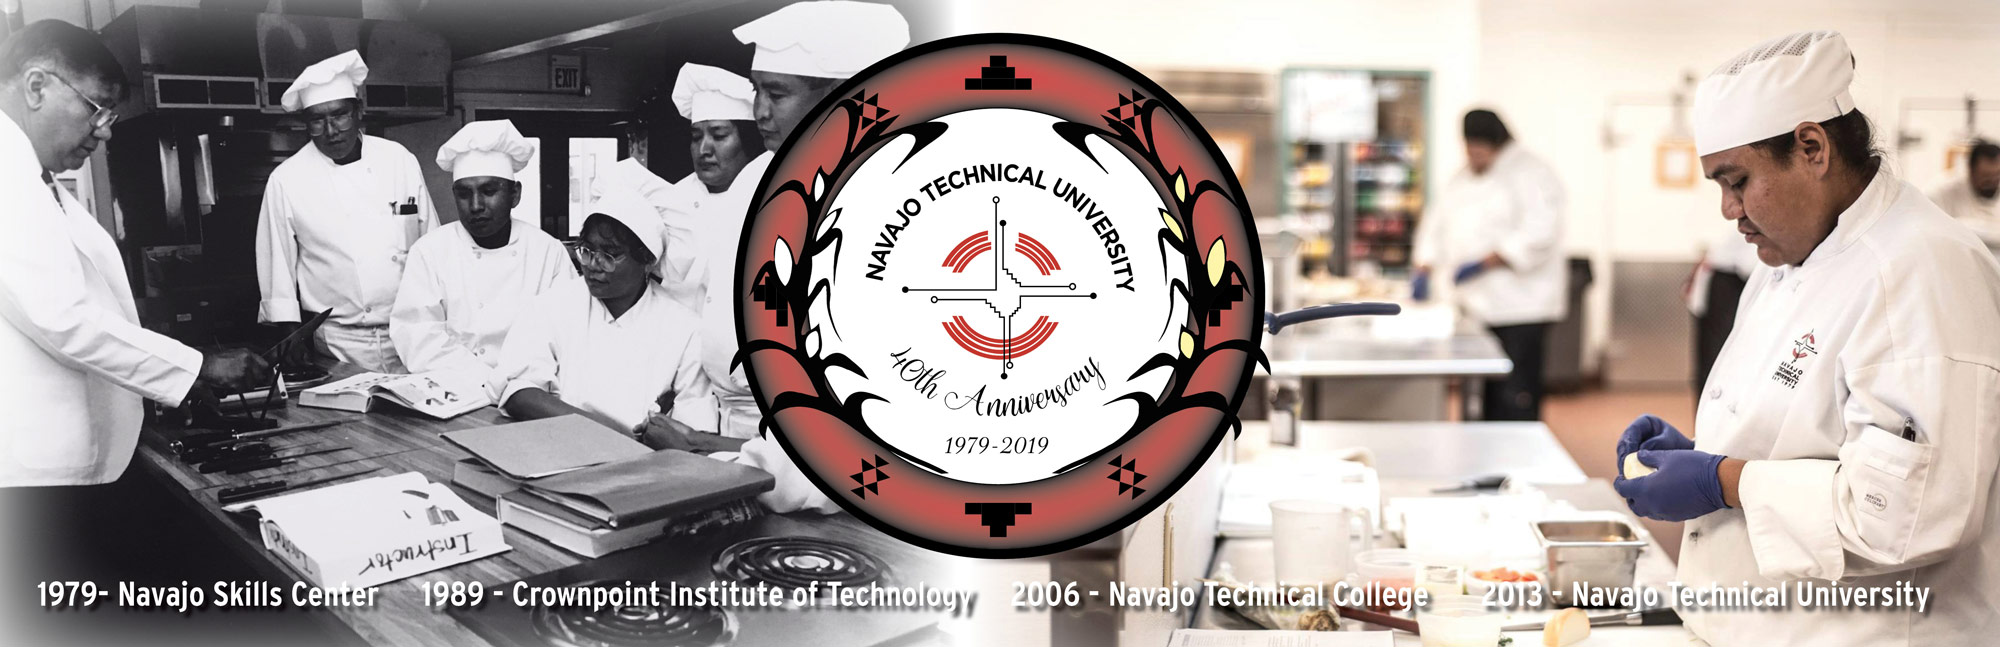 Navajo Technical University | Crownpoint, NM - Navajo Technical